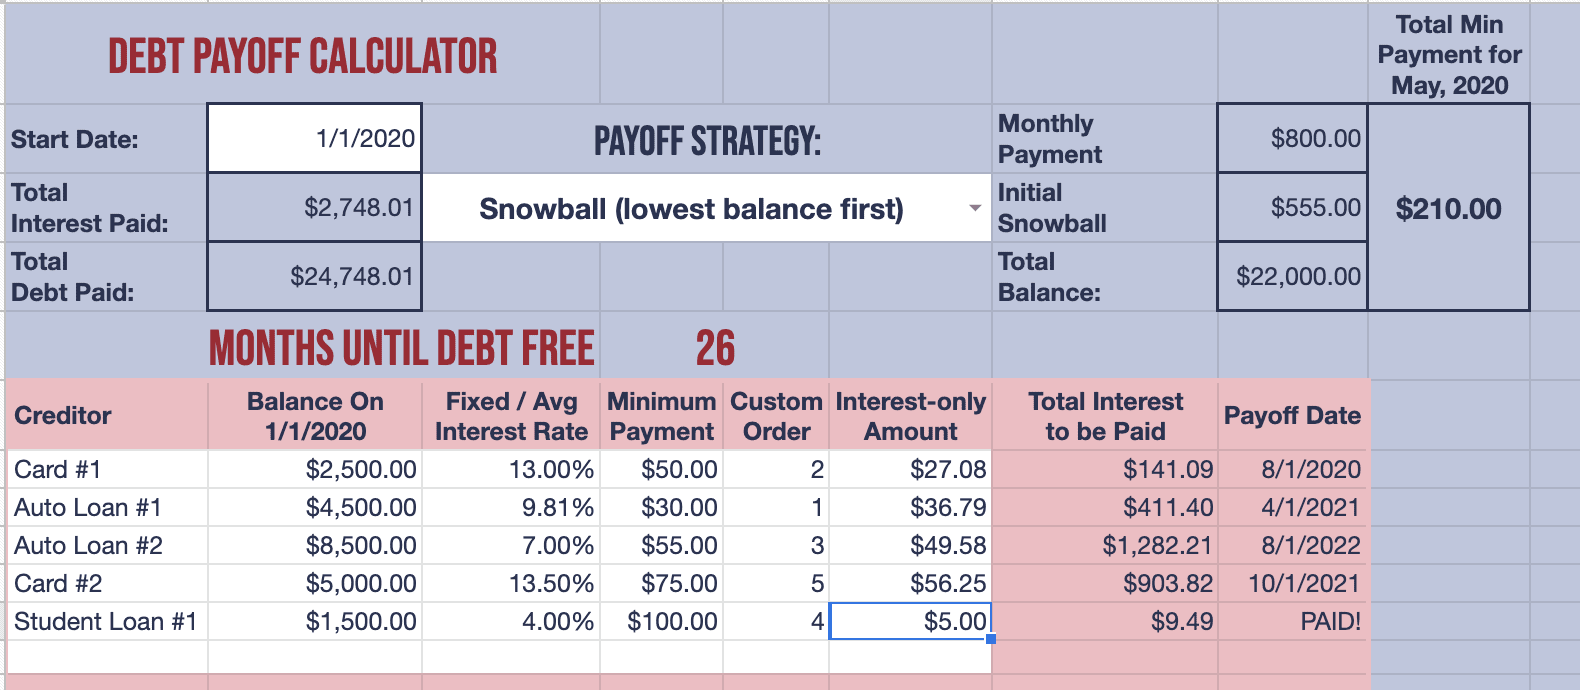 Debt Payoff Calculator 2